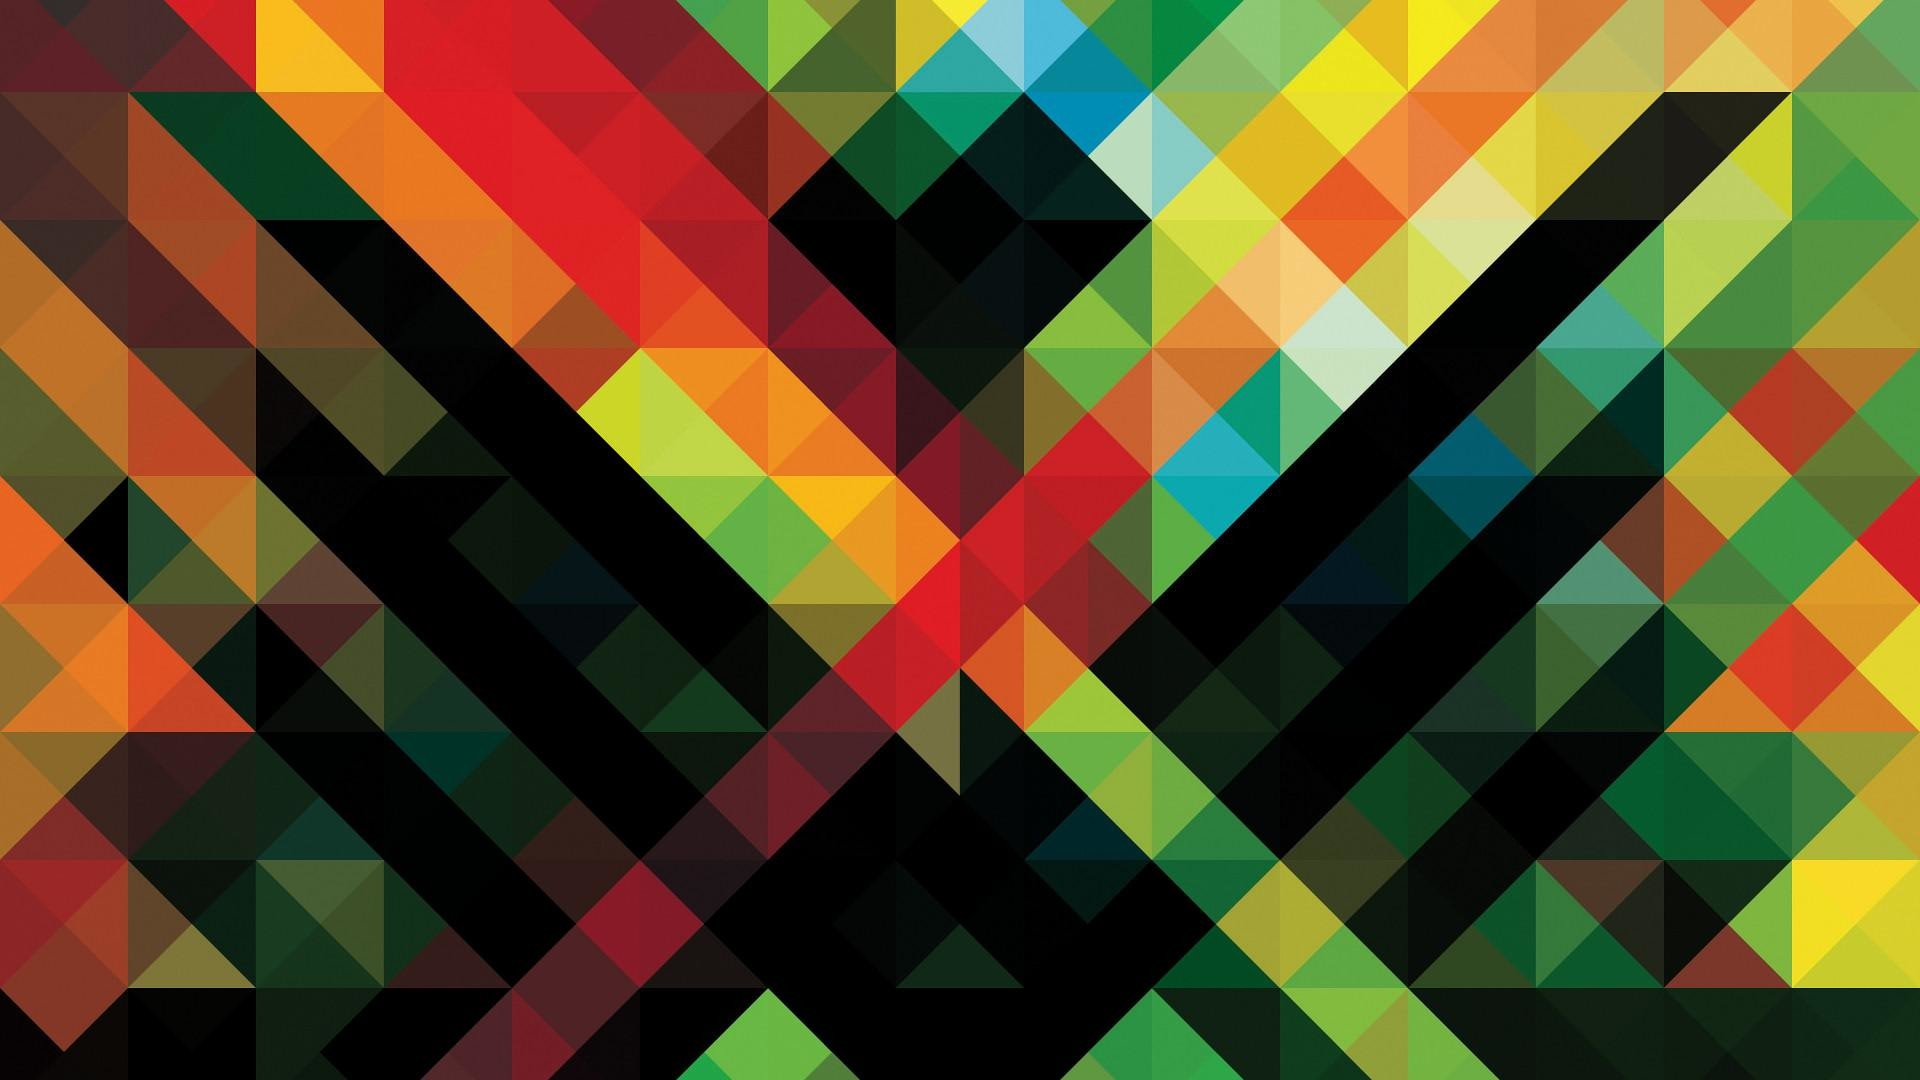 Creative-Colorful-Wallpaper-Geometry-Image-HD-Picture